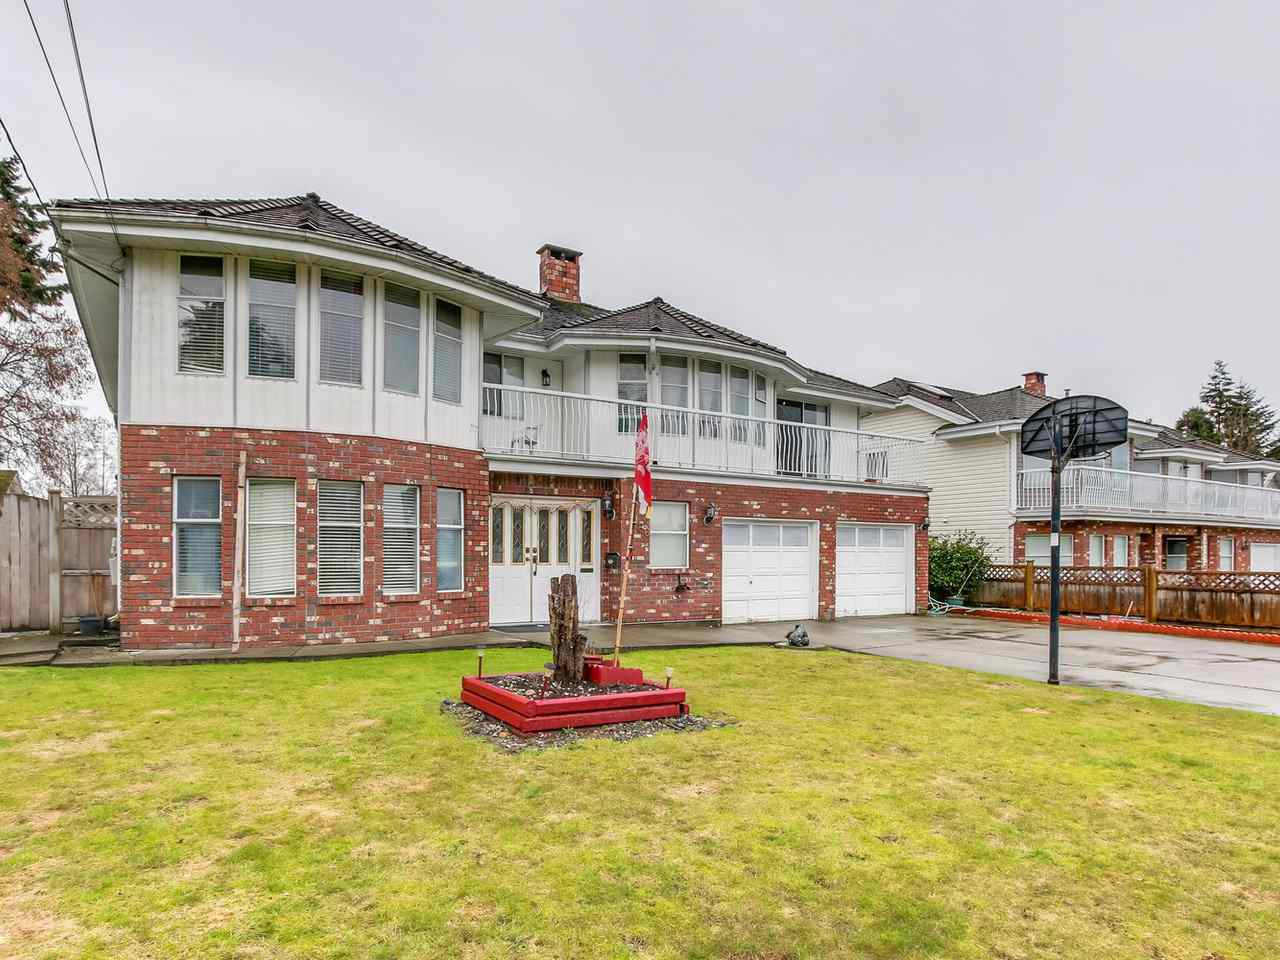 Main Photo: 12186 97A Avenue in Surrey: Cedar Hills House for sale (North Surrey)  : MLS® # R2145840